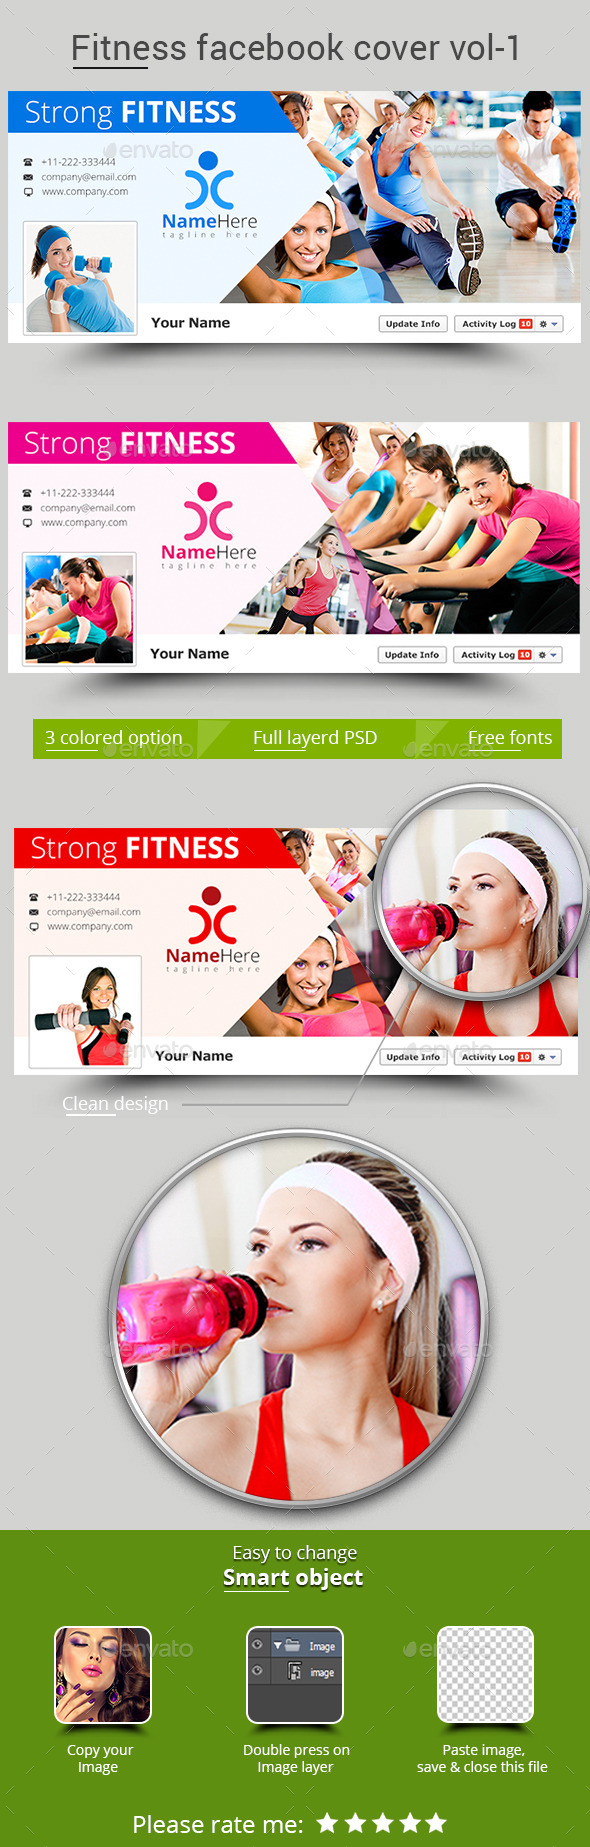 Fitness Facebook Cover Vol- 1 - Facebook Timeline Covers Social Media